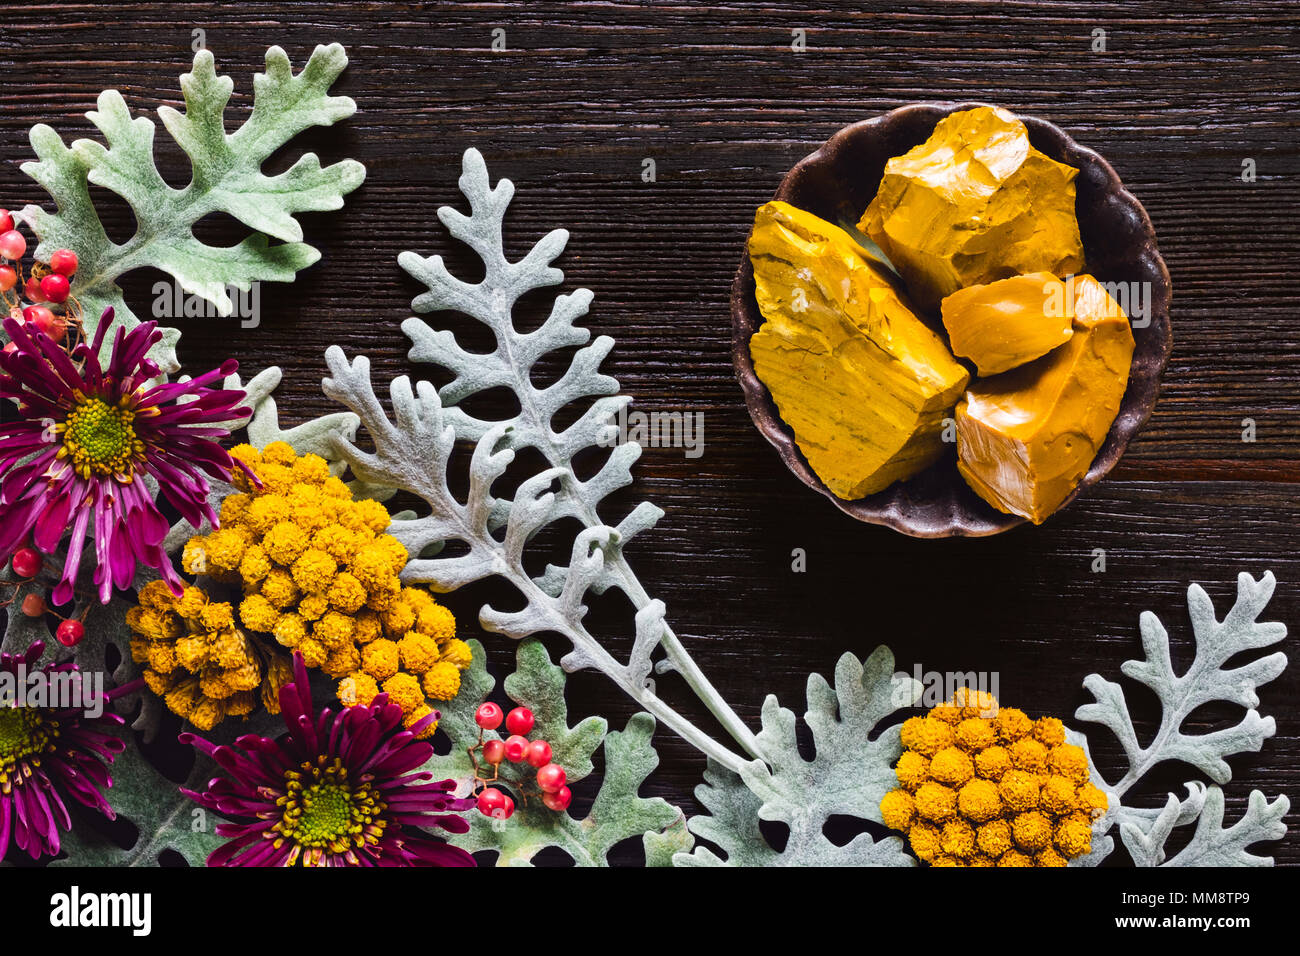 Yellow Jasper Stones with Dusty Miller, Clustered Everlasting and Chrysanthemums on Dark Table with Space for Copy Stock Photo